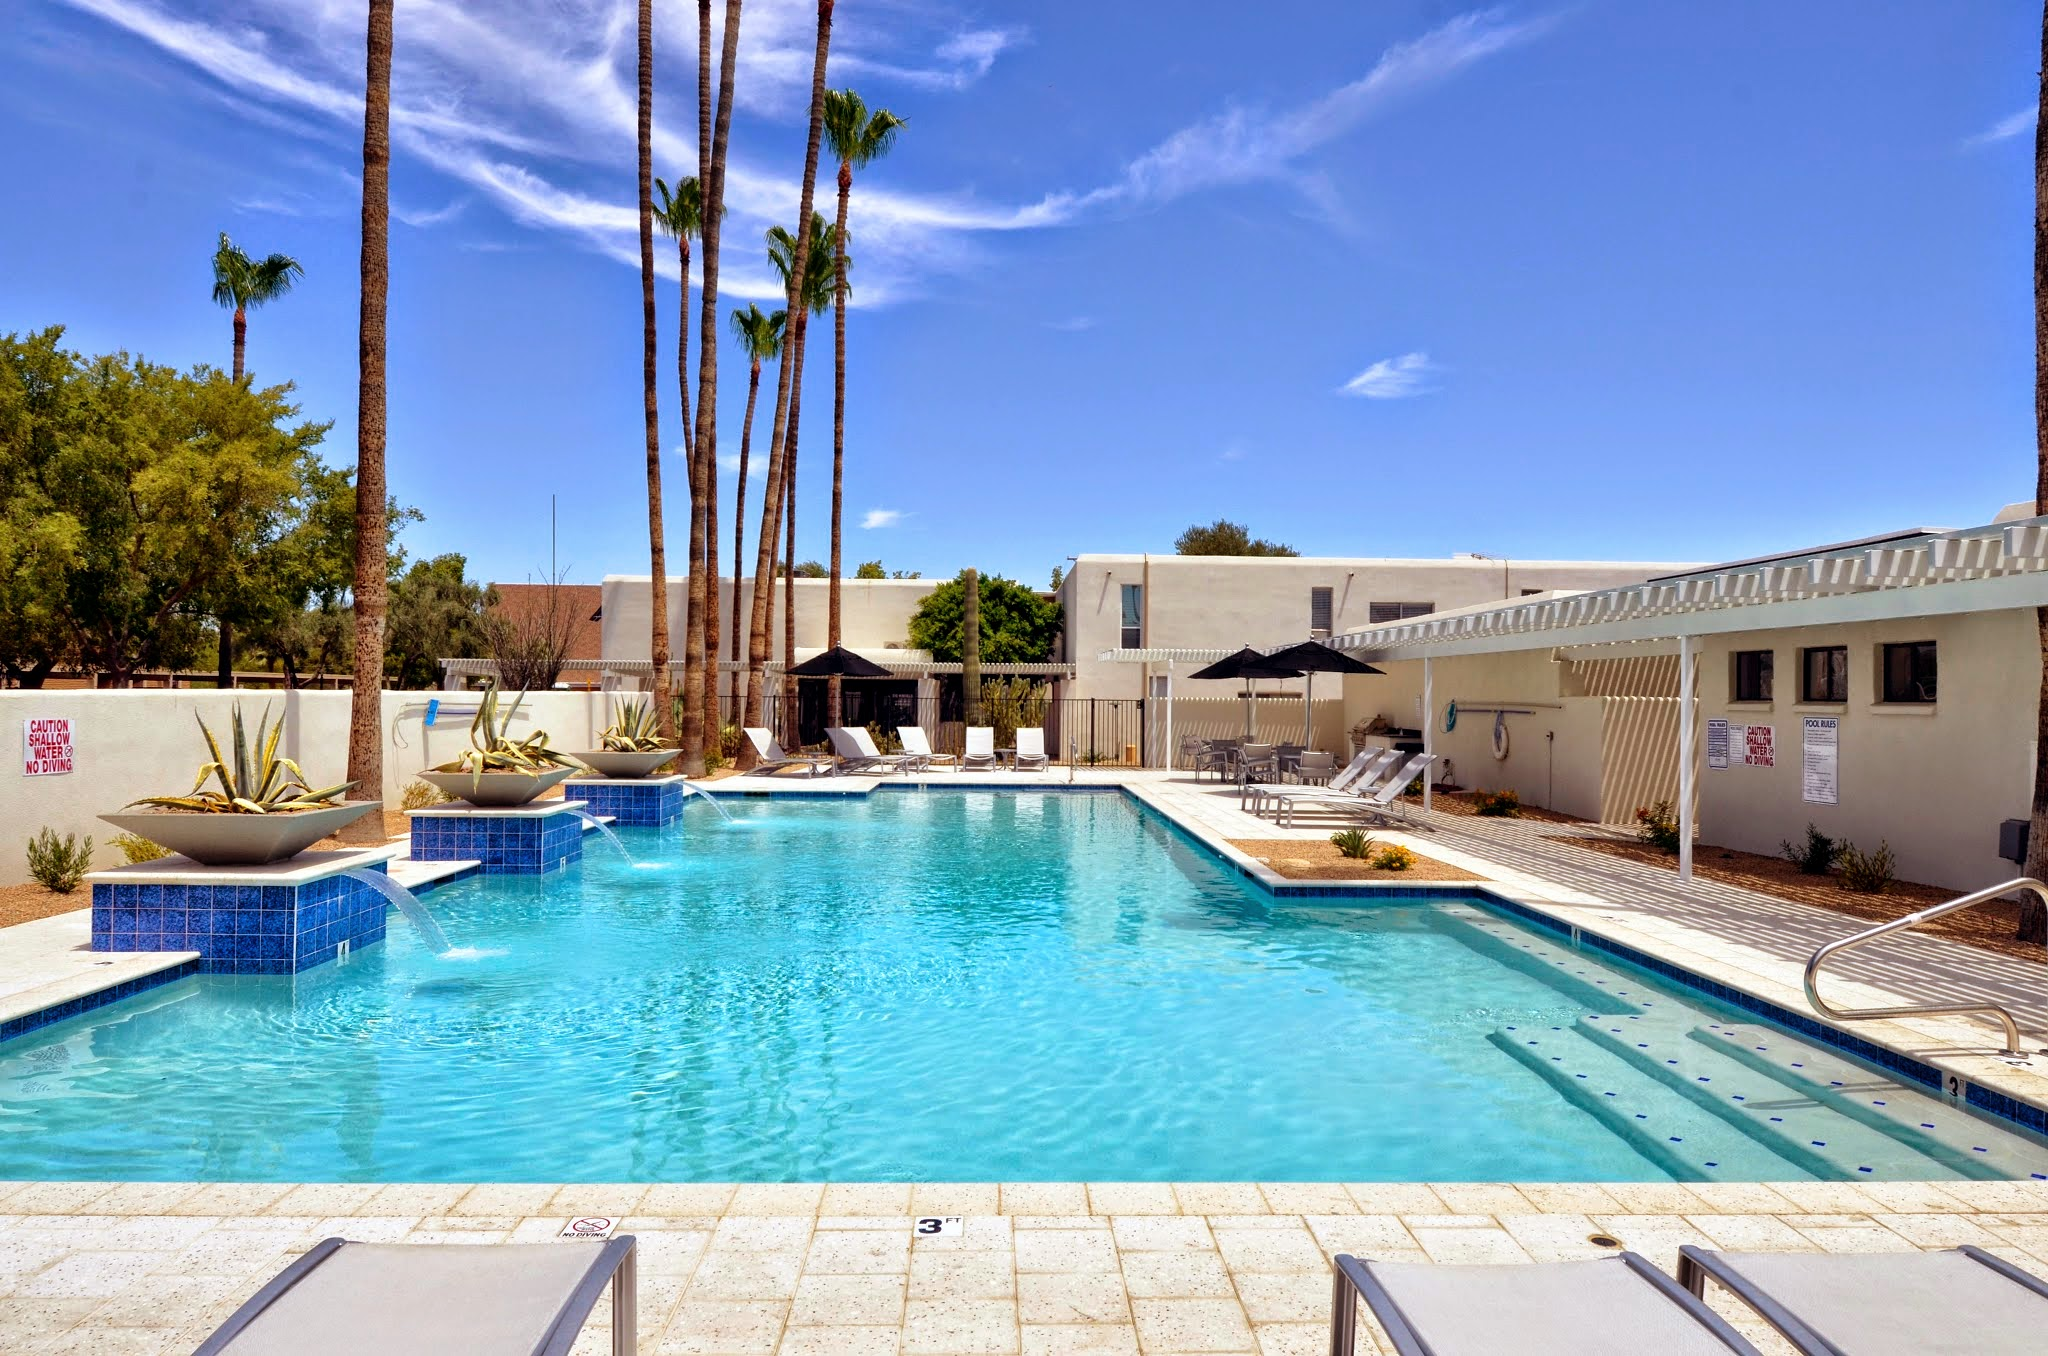 Resort-Style Pool at The Winfield of Scottsdale Apartments in Scottsdale, Arizona